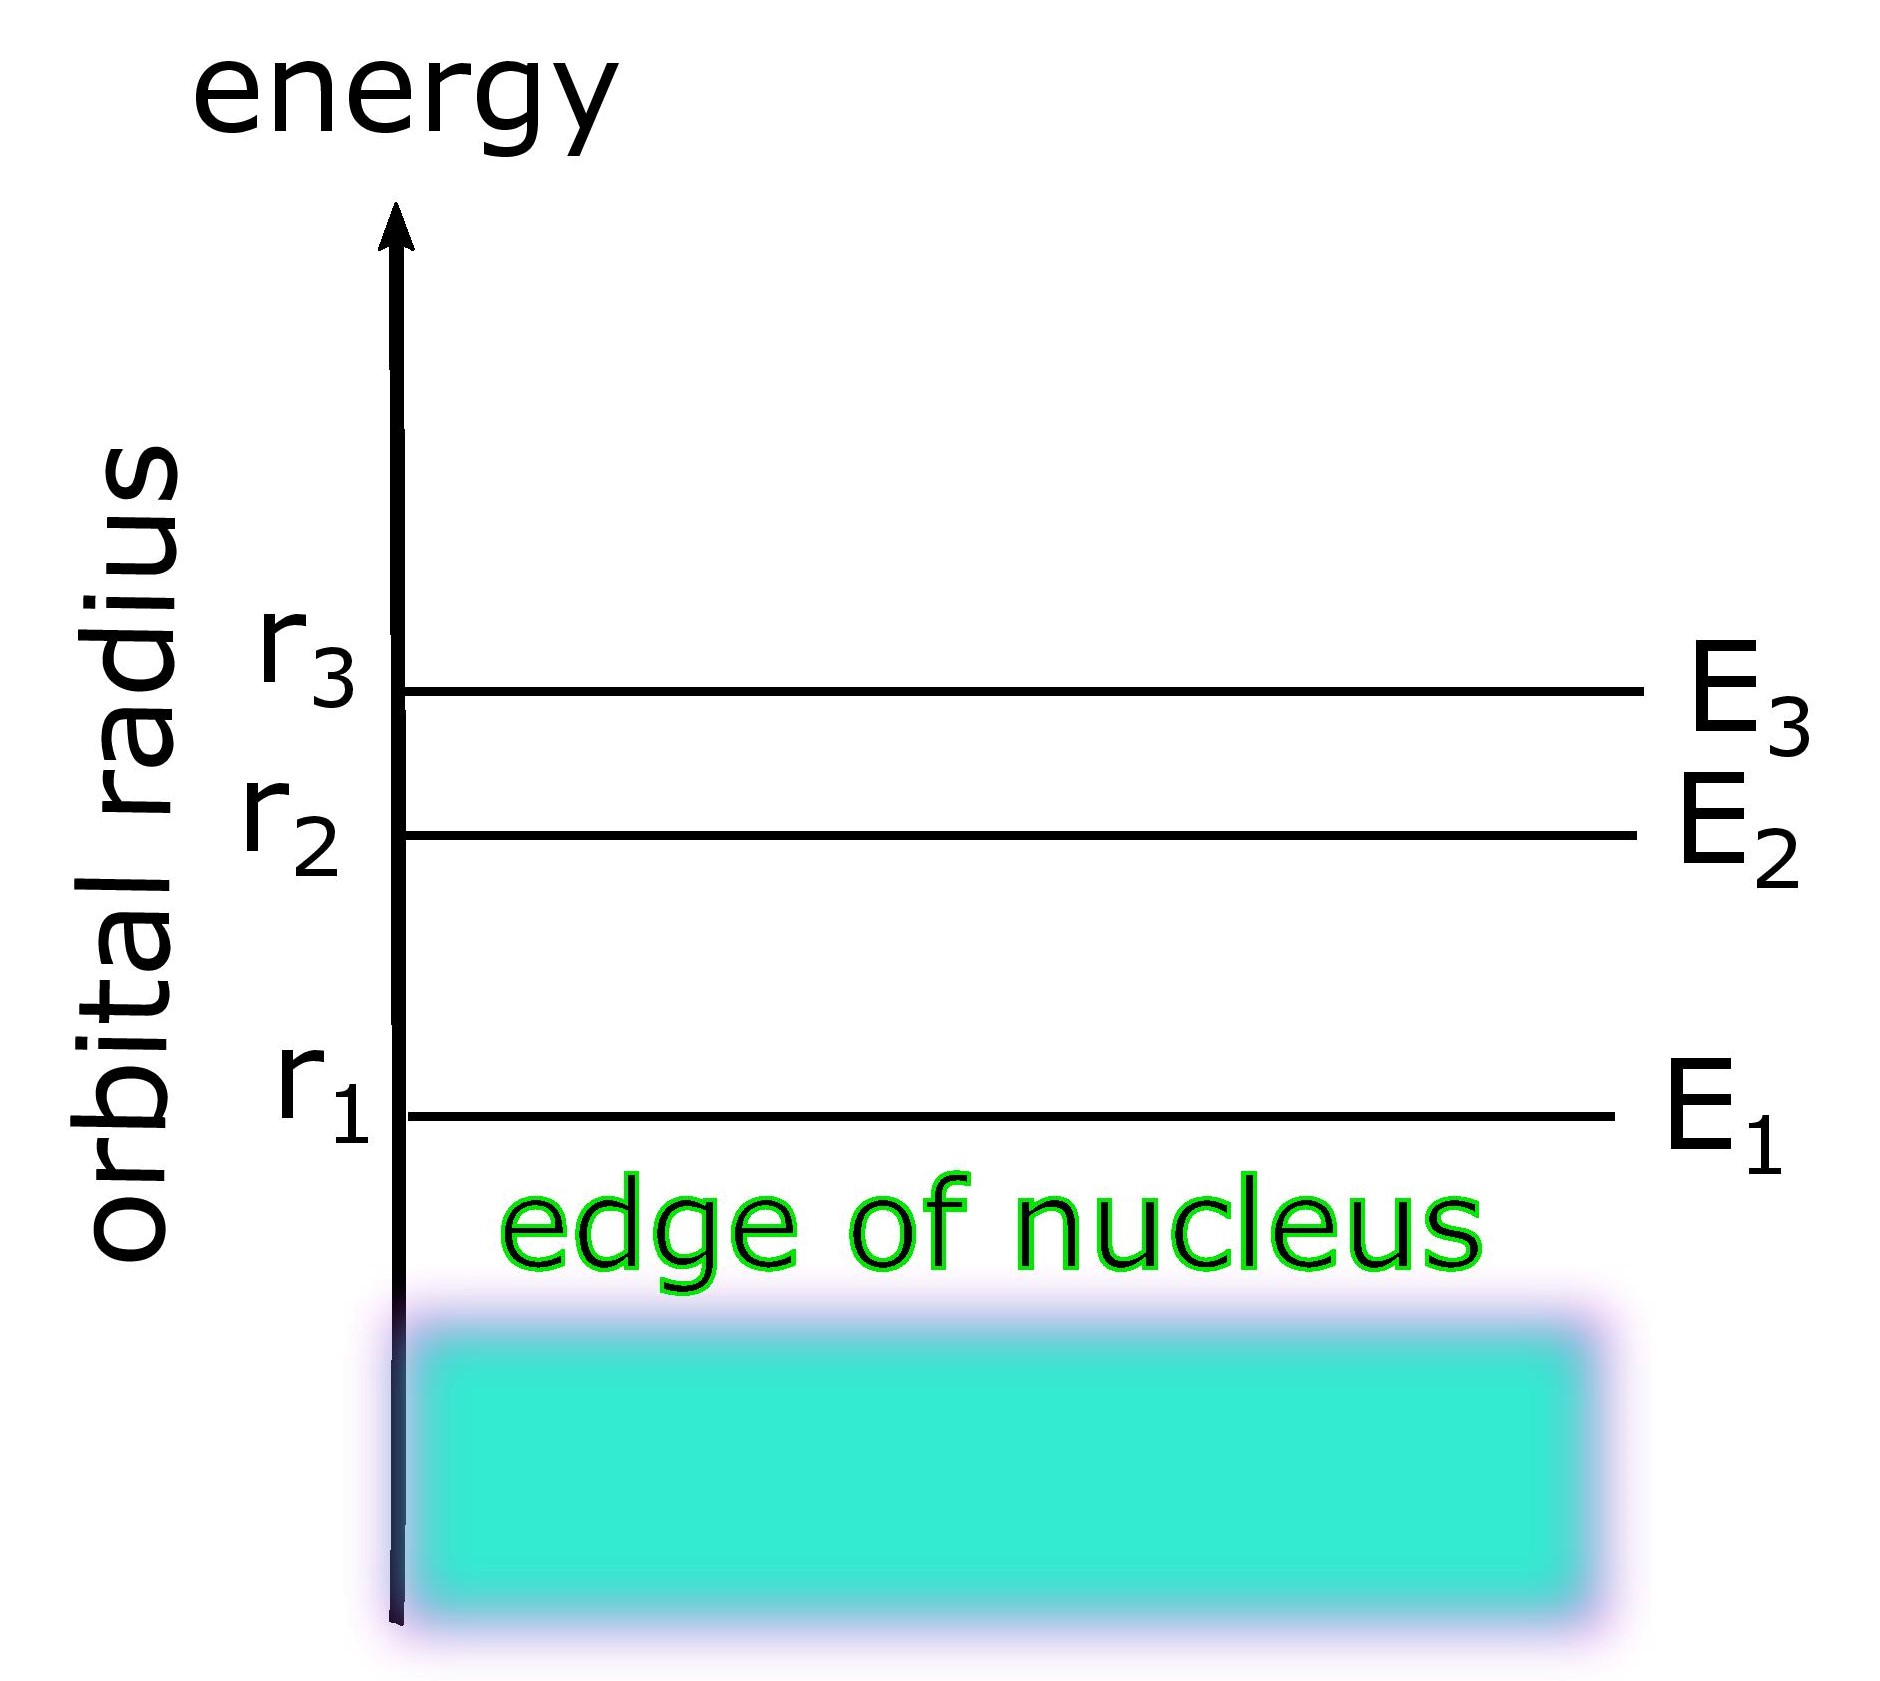 energy levels of a single electron are proportional to their orbit size.